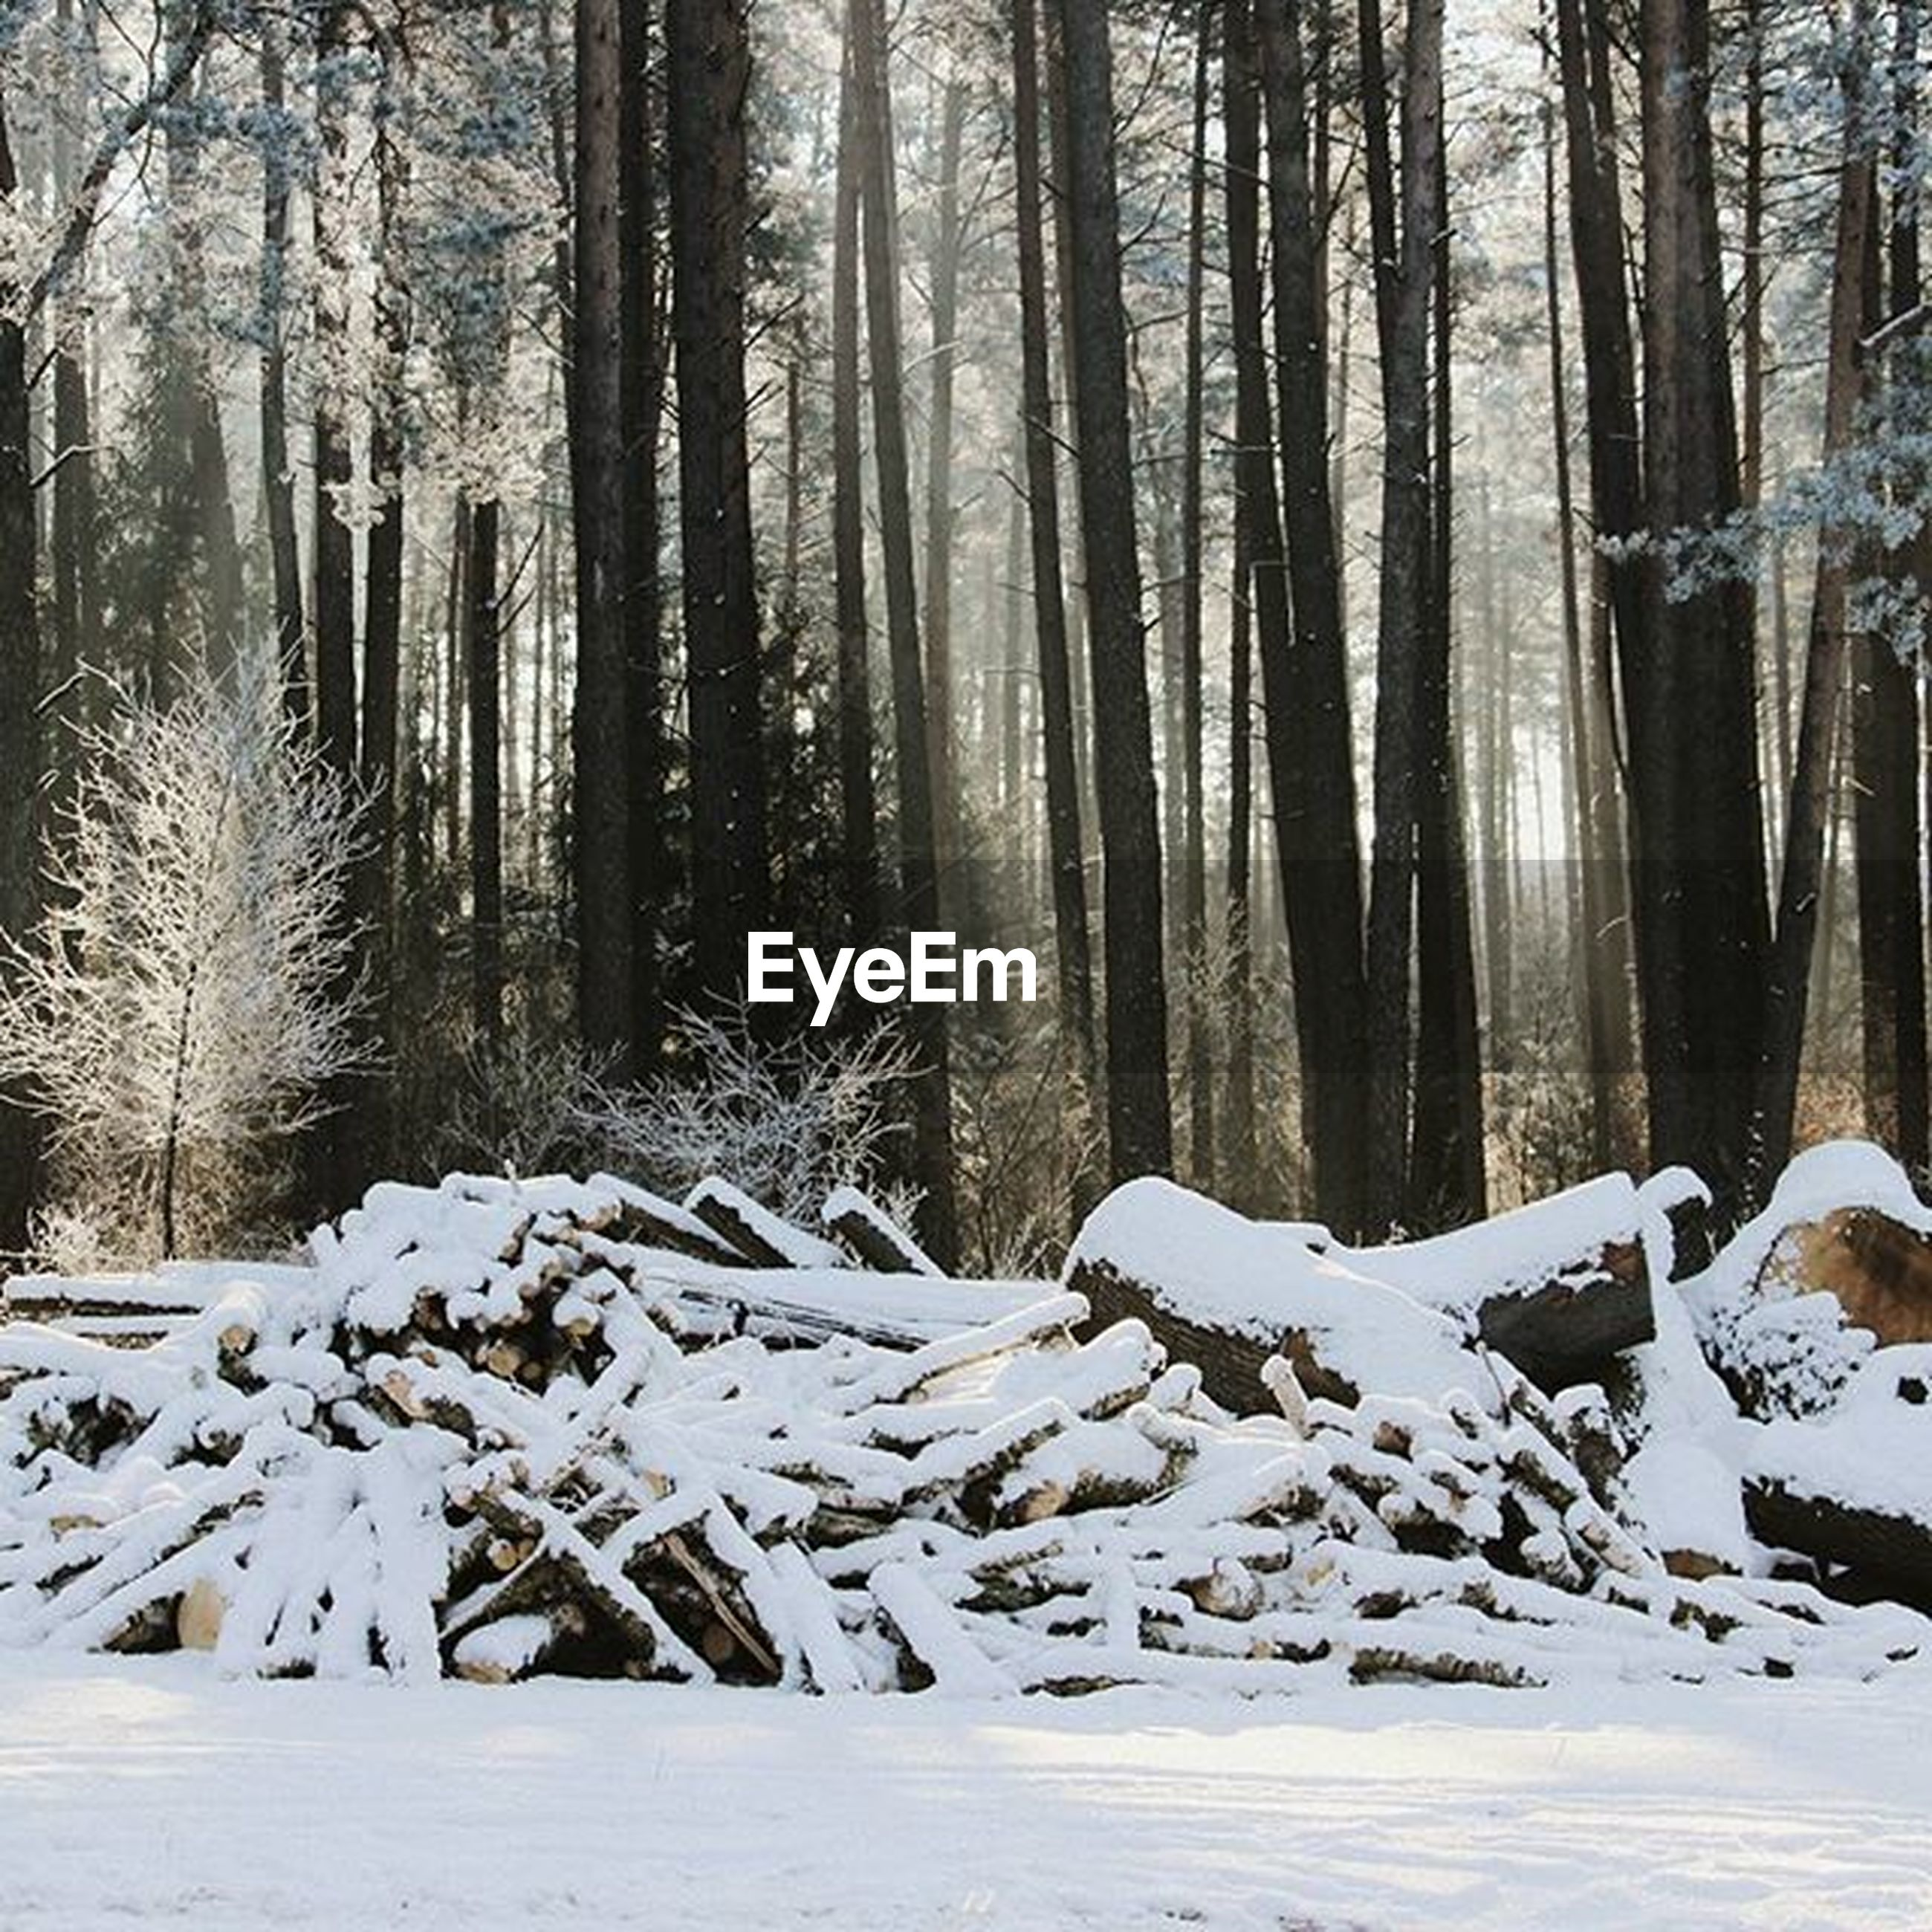 snow, winter, cold temperature, season, tree, weather, forest, covering, tranquility, tranquil scene, woodland, landscape, nature, tree trunk, beauty in nature, scenics, white color, frozen, covered, non-urban scene